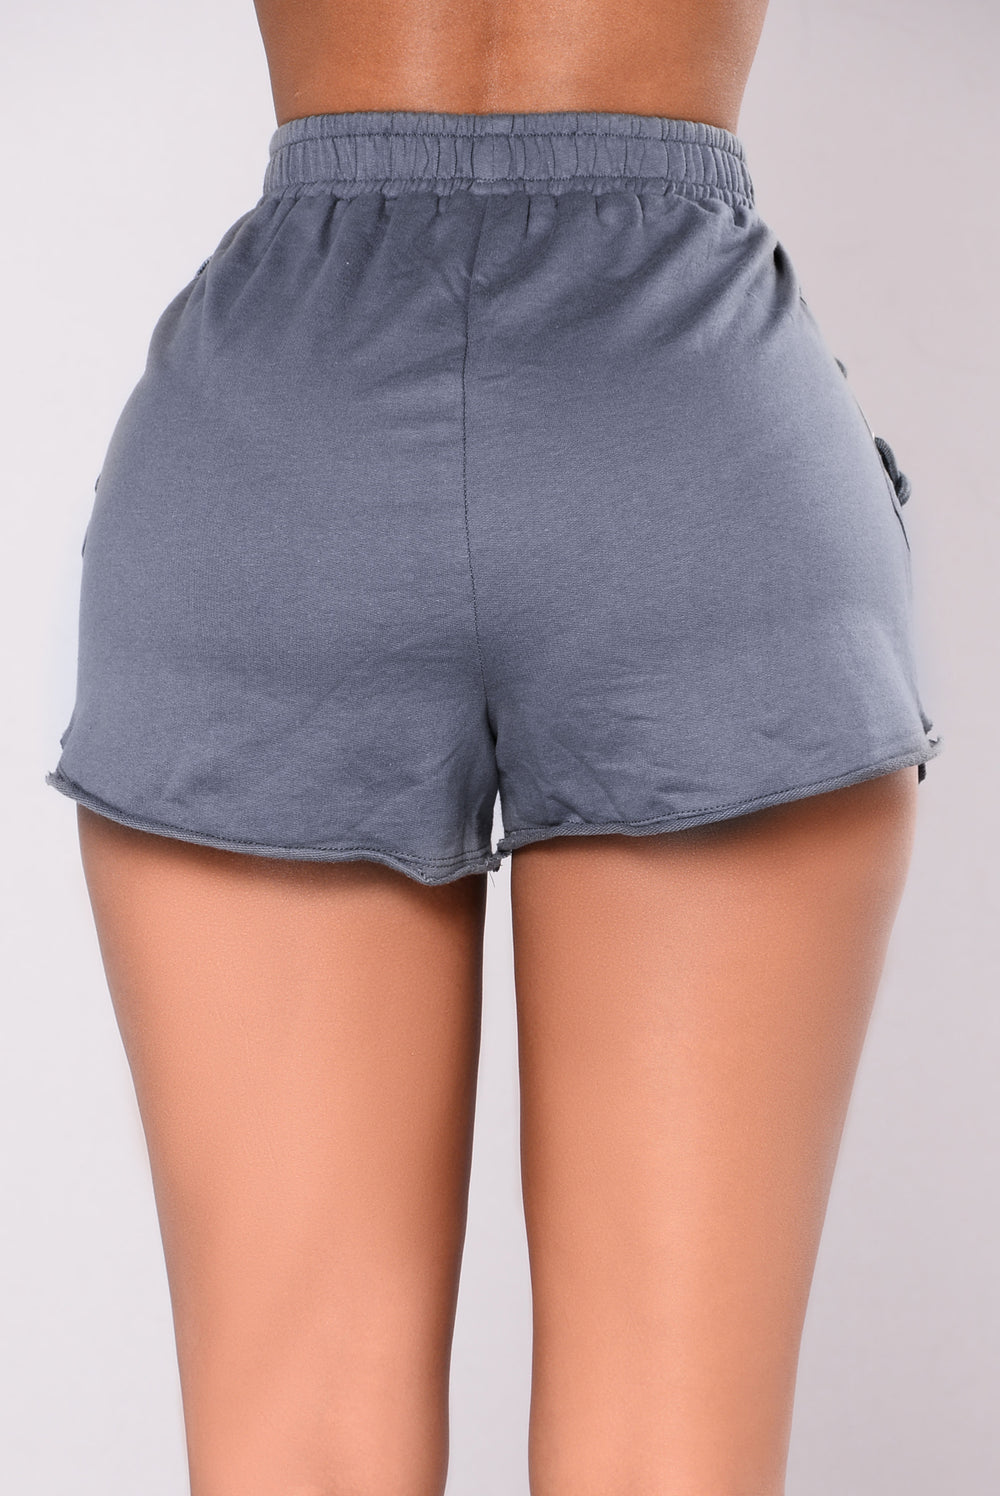 A Place Like This Shorts - Denim Blue